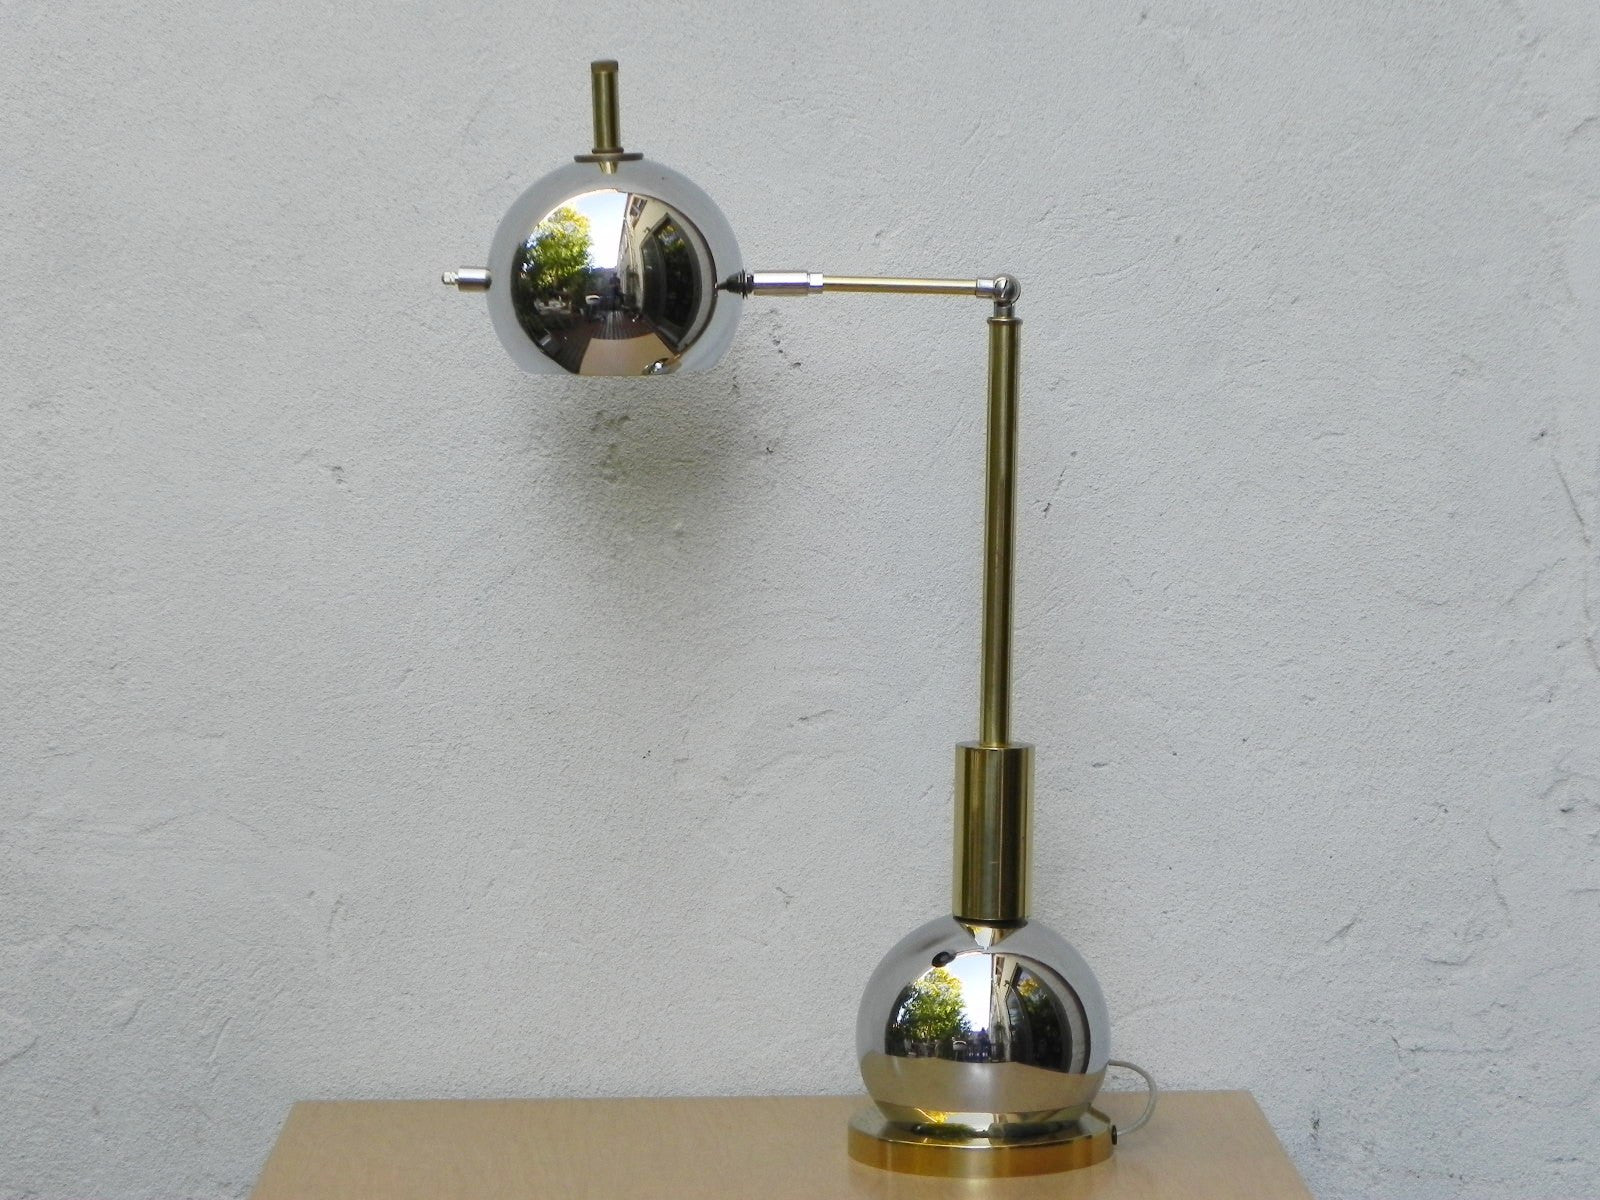 ... Chrome Ball U0026 Brass Desk Lamp, Re Crafted ...